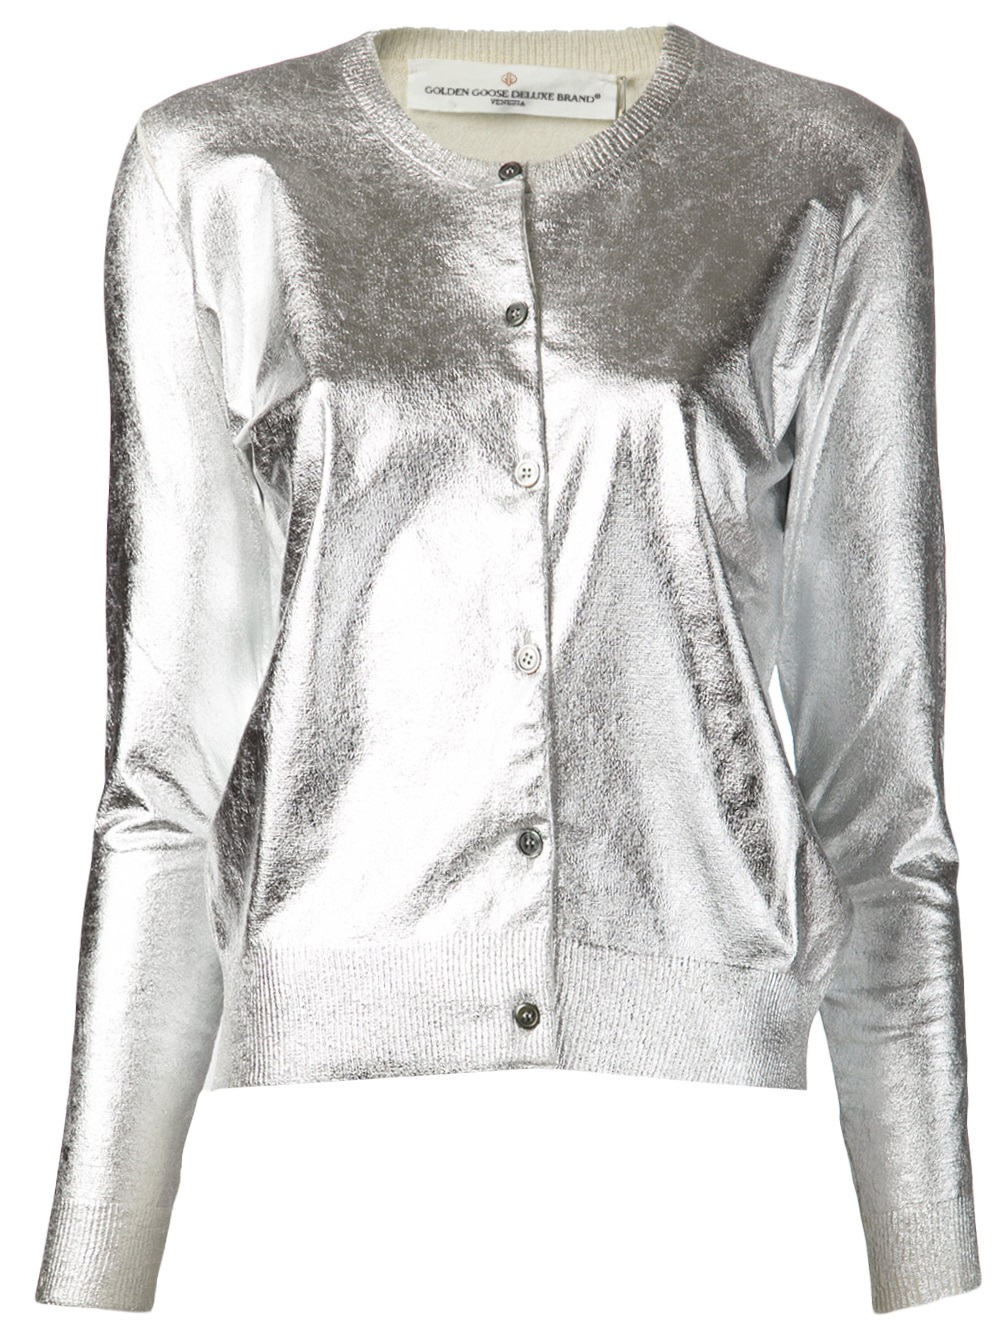 Golden goose deluxe brand 'Chelsea' Cardigan in Metallic | Lyst